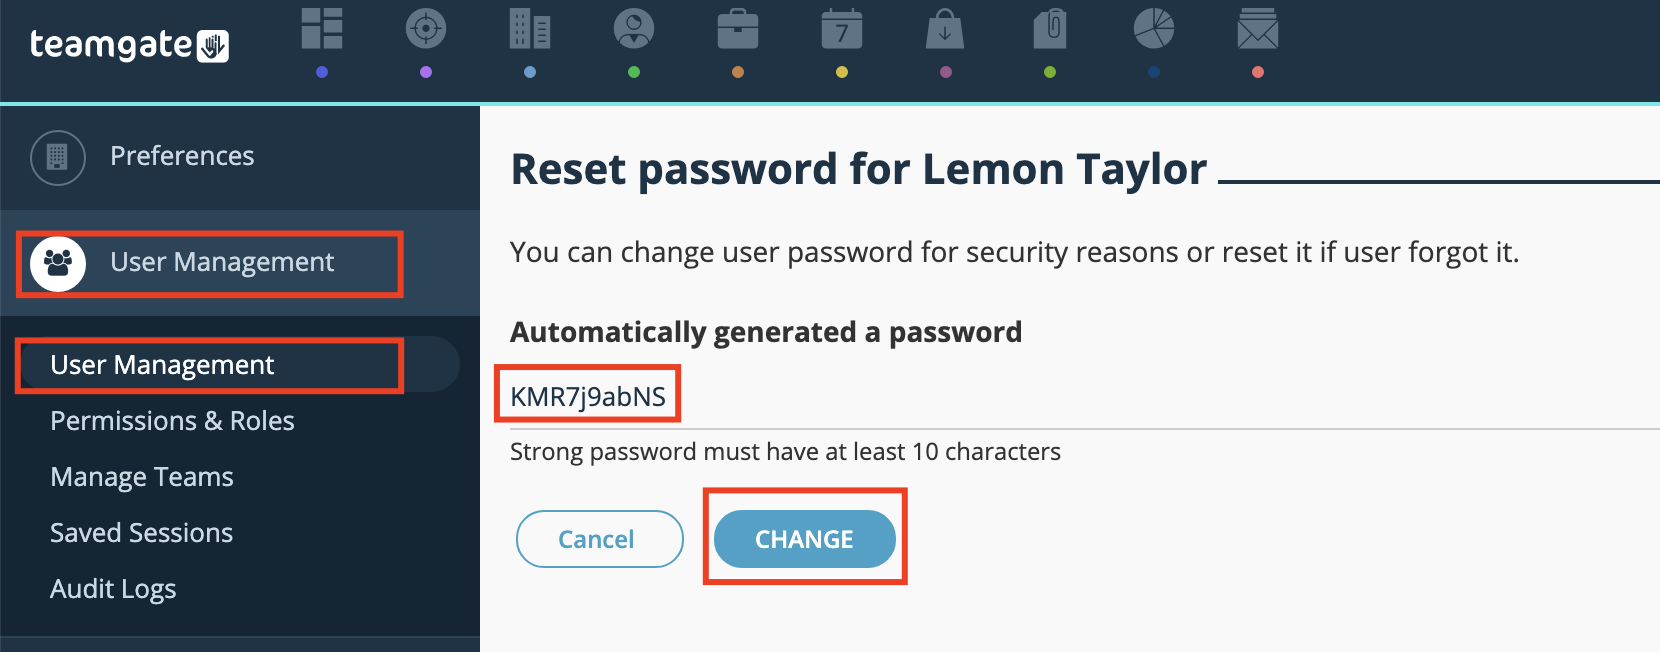 Reset-password-generated-password-Teamgate-CRM.png